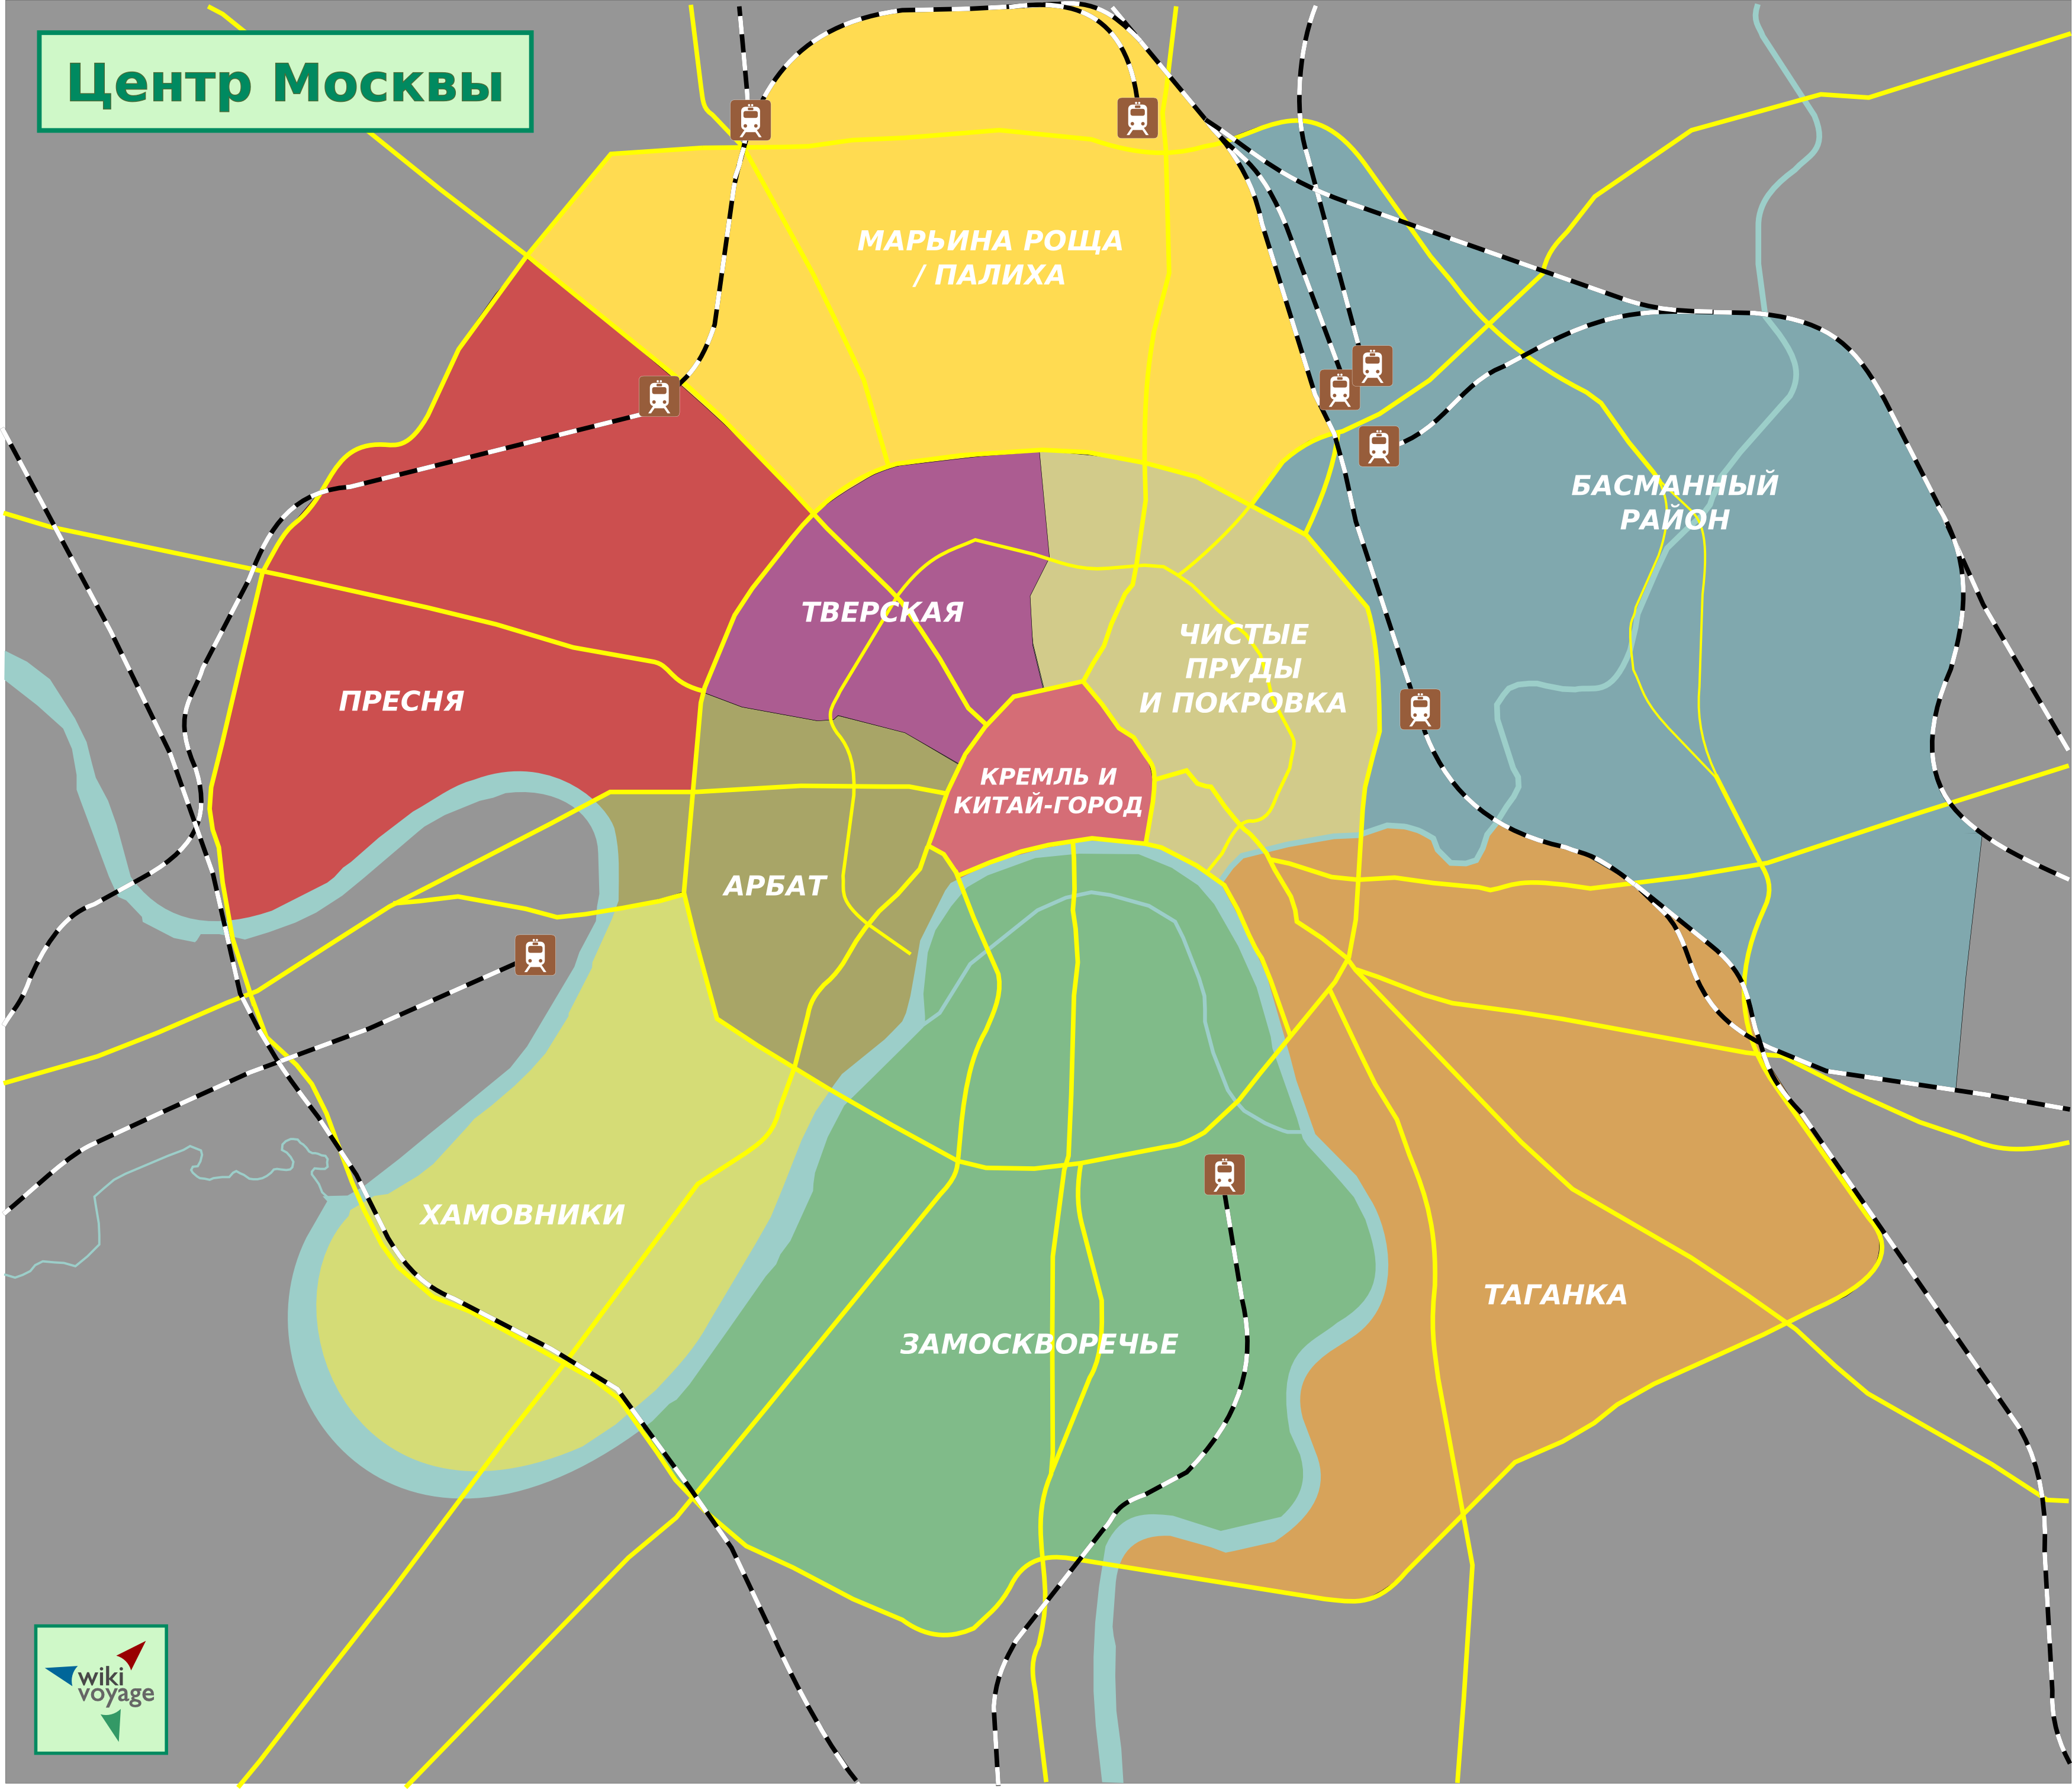 File:Central-Moscow map.png - Wikimedia Commons